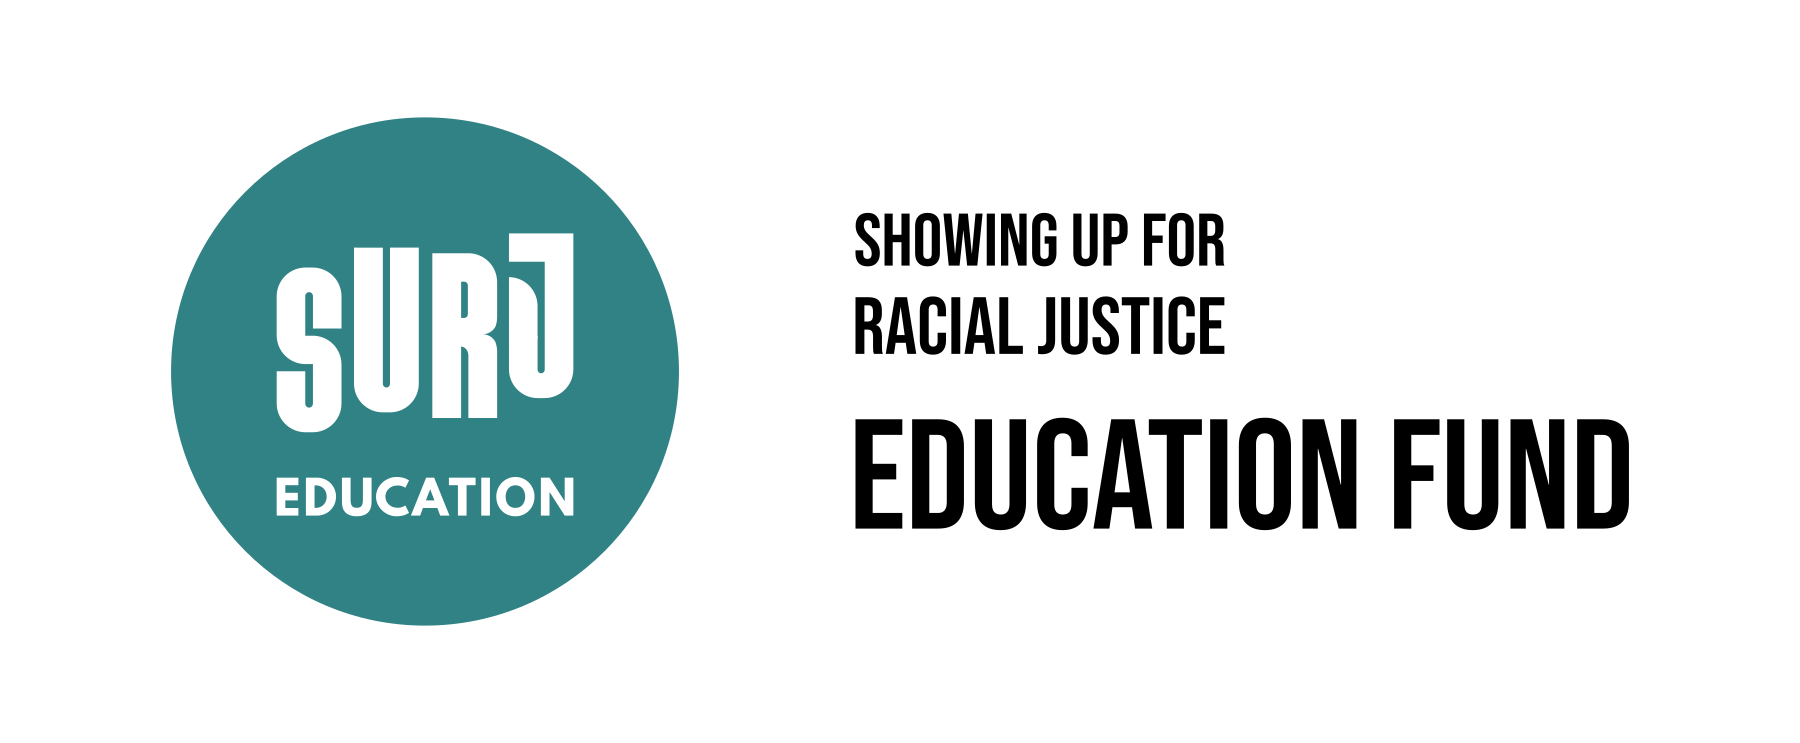 Showing Up for Racial Justice Education Fund